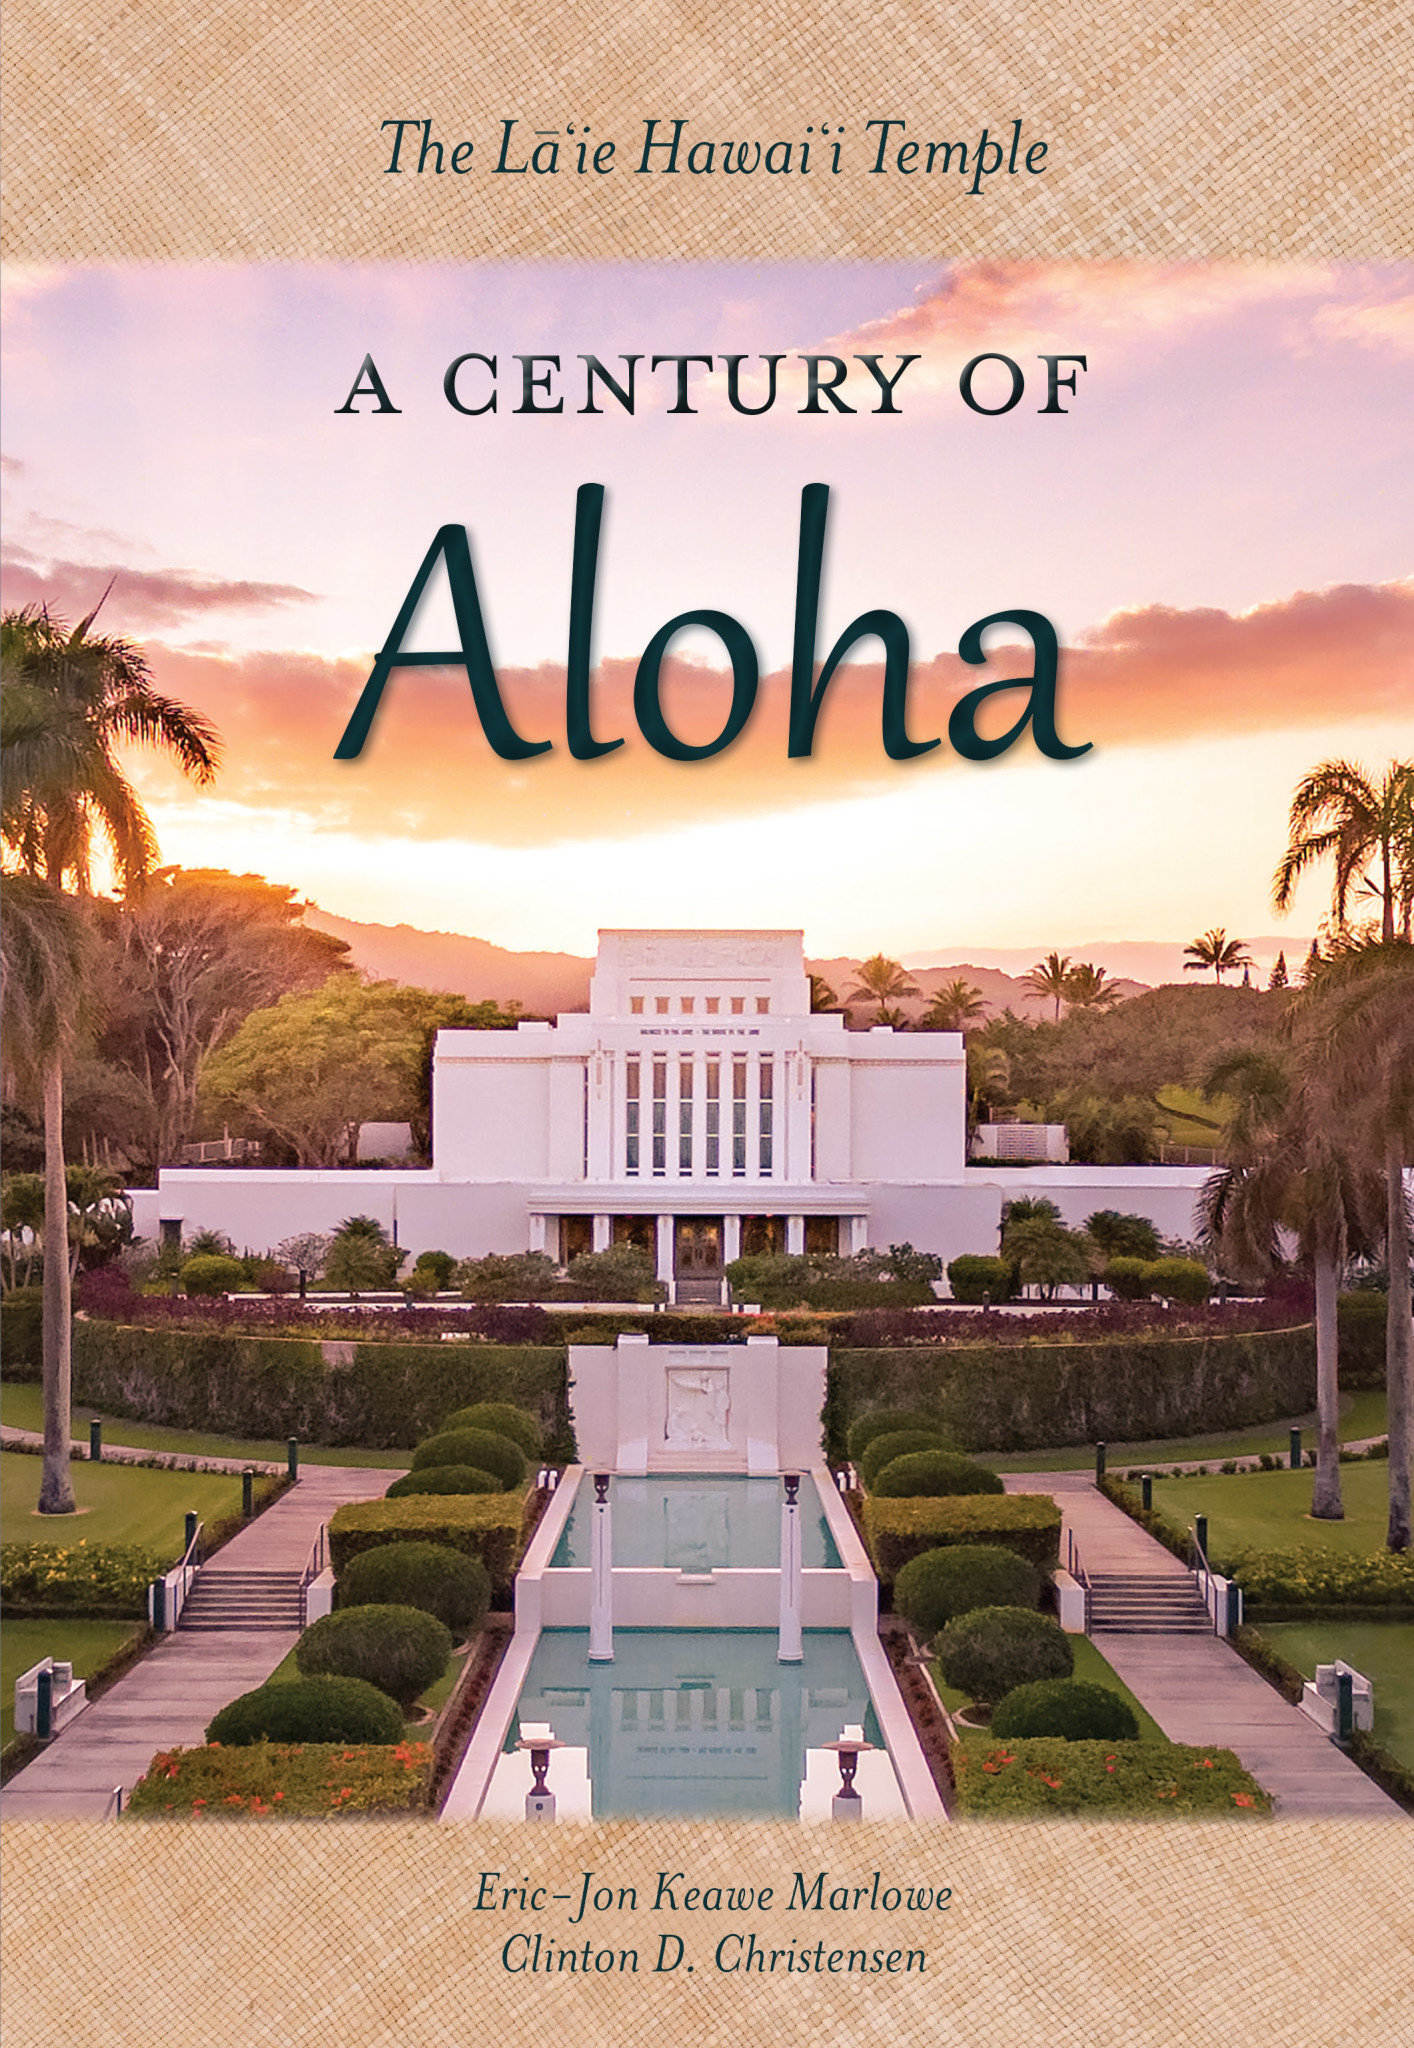 The Laie Hawaii Temple-A Century of Aloha - Marlowe